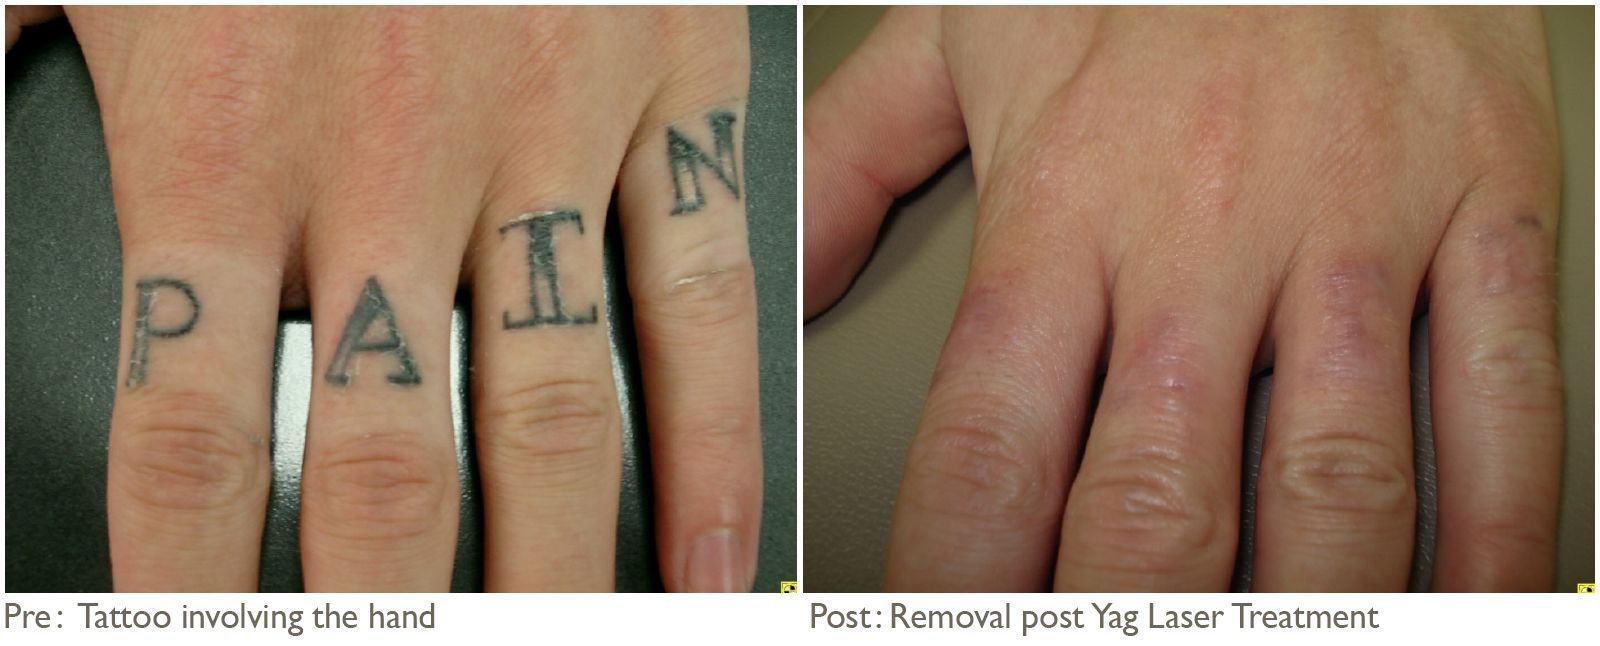 Tattoo Removal Before And After Pictures and Article